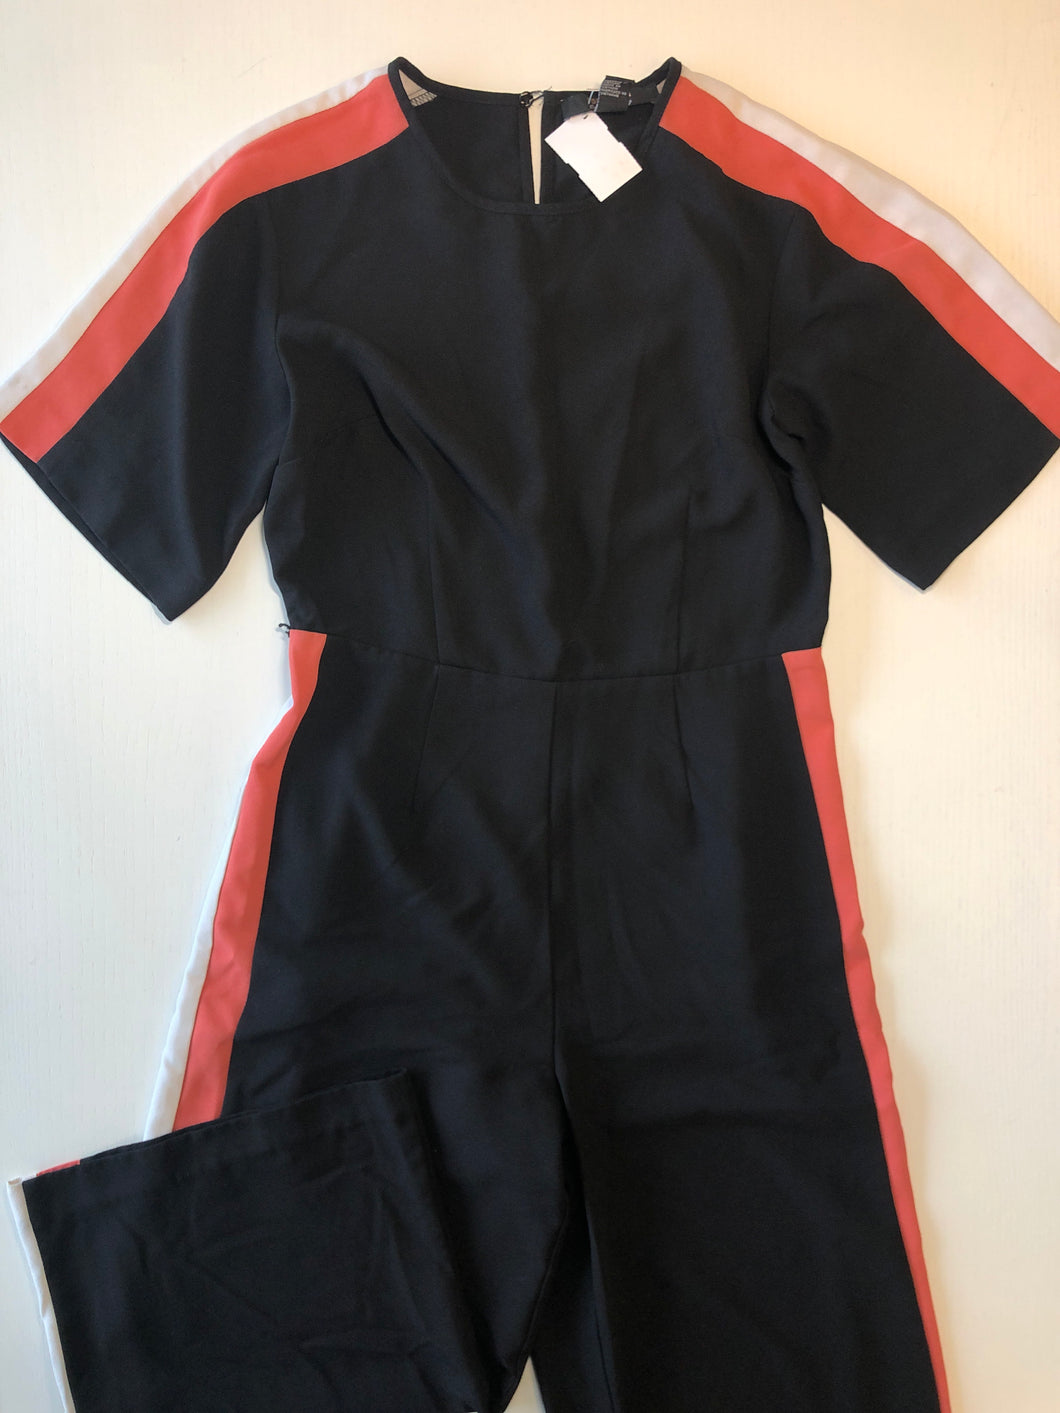 Gently Used Women's Forever 21 Jumpsuit Size S